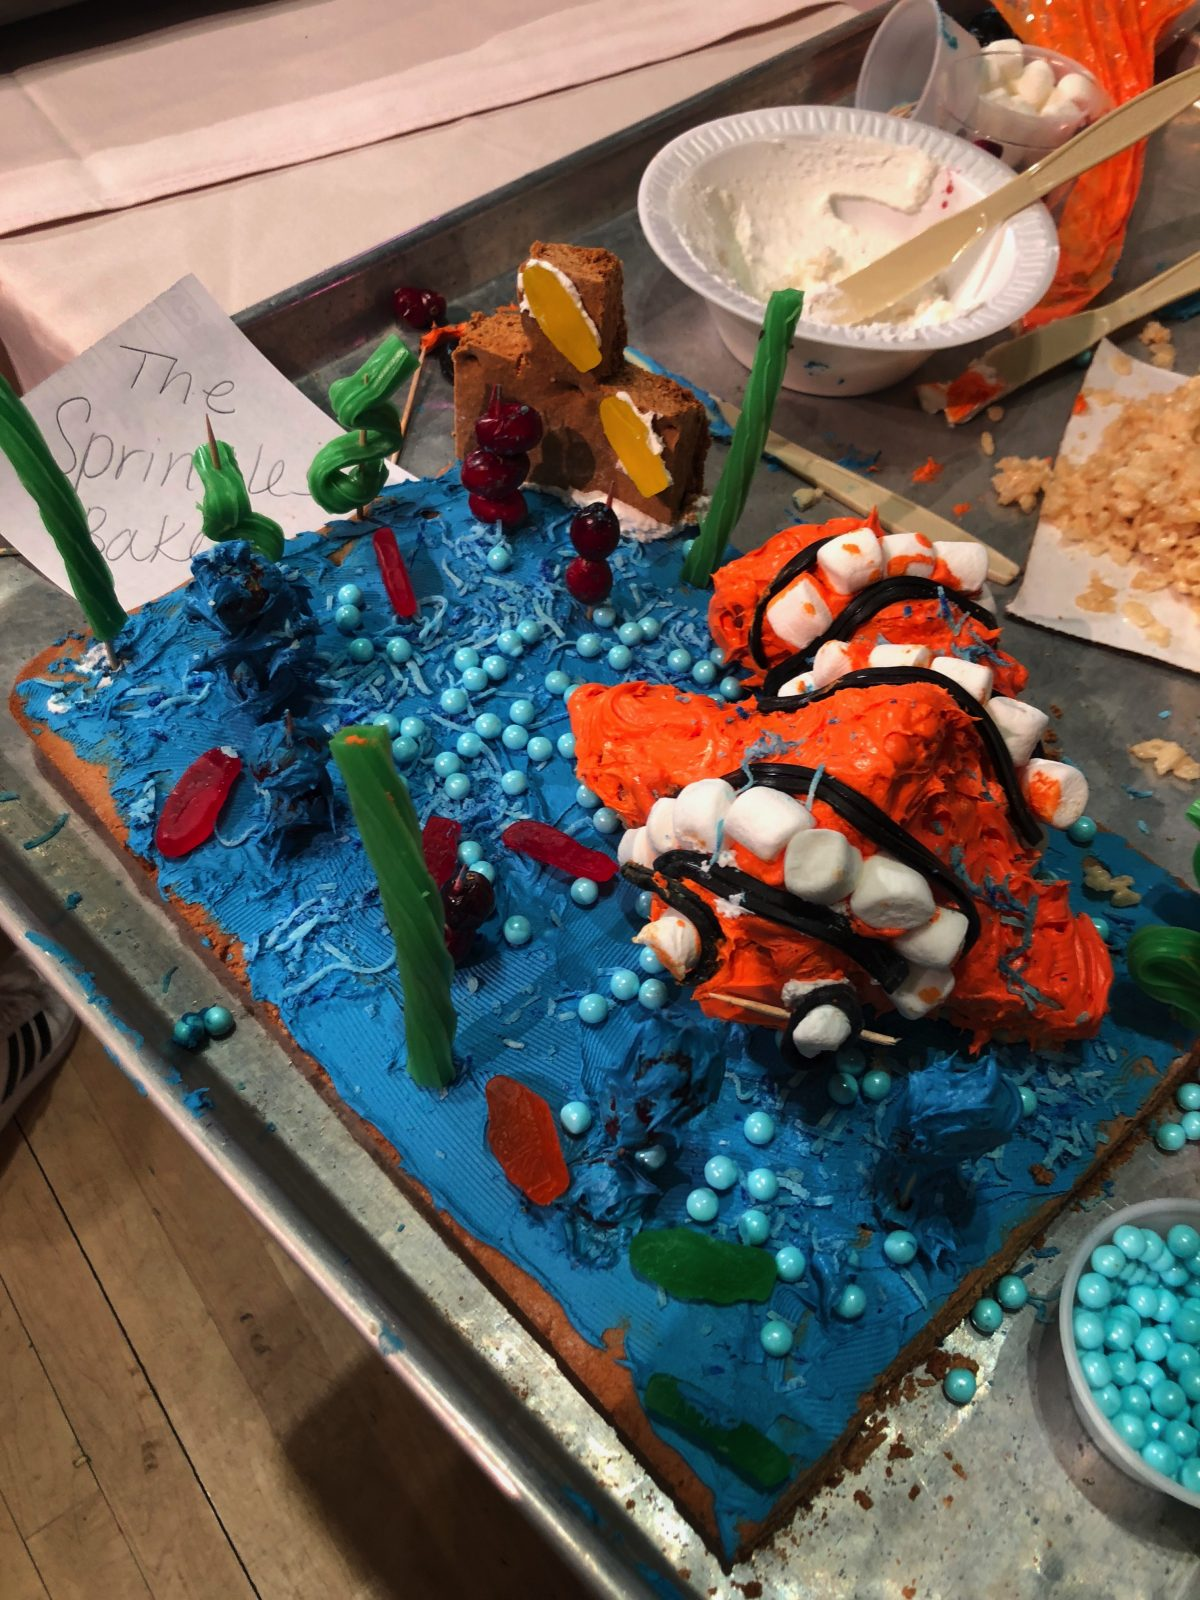 """Finding Nemo"" Gingerbread Creation - Our Entry in the Gingerbread Wars Contest at Woodloch Pines"